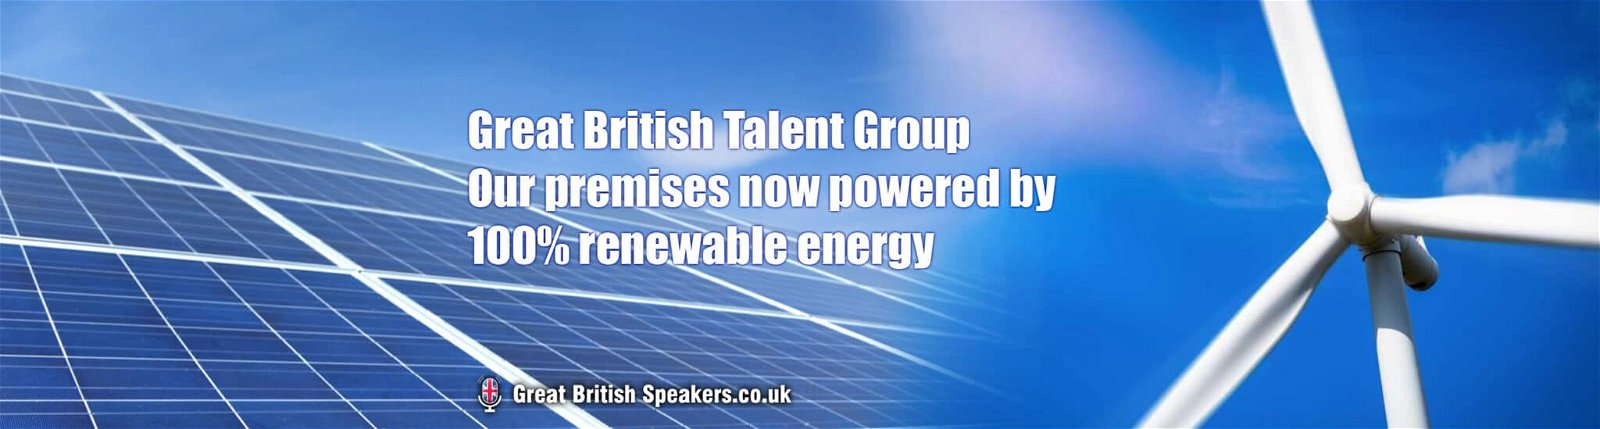 Great British Talent Group powered by sustainable energy